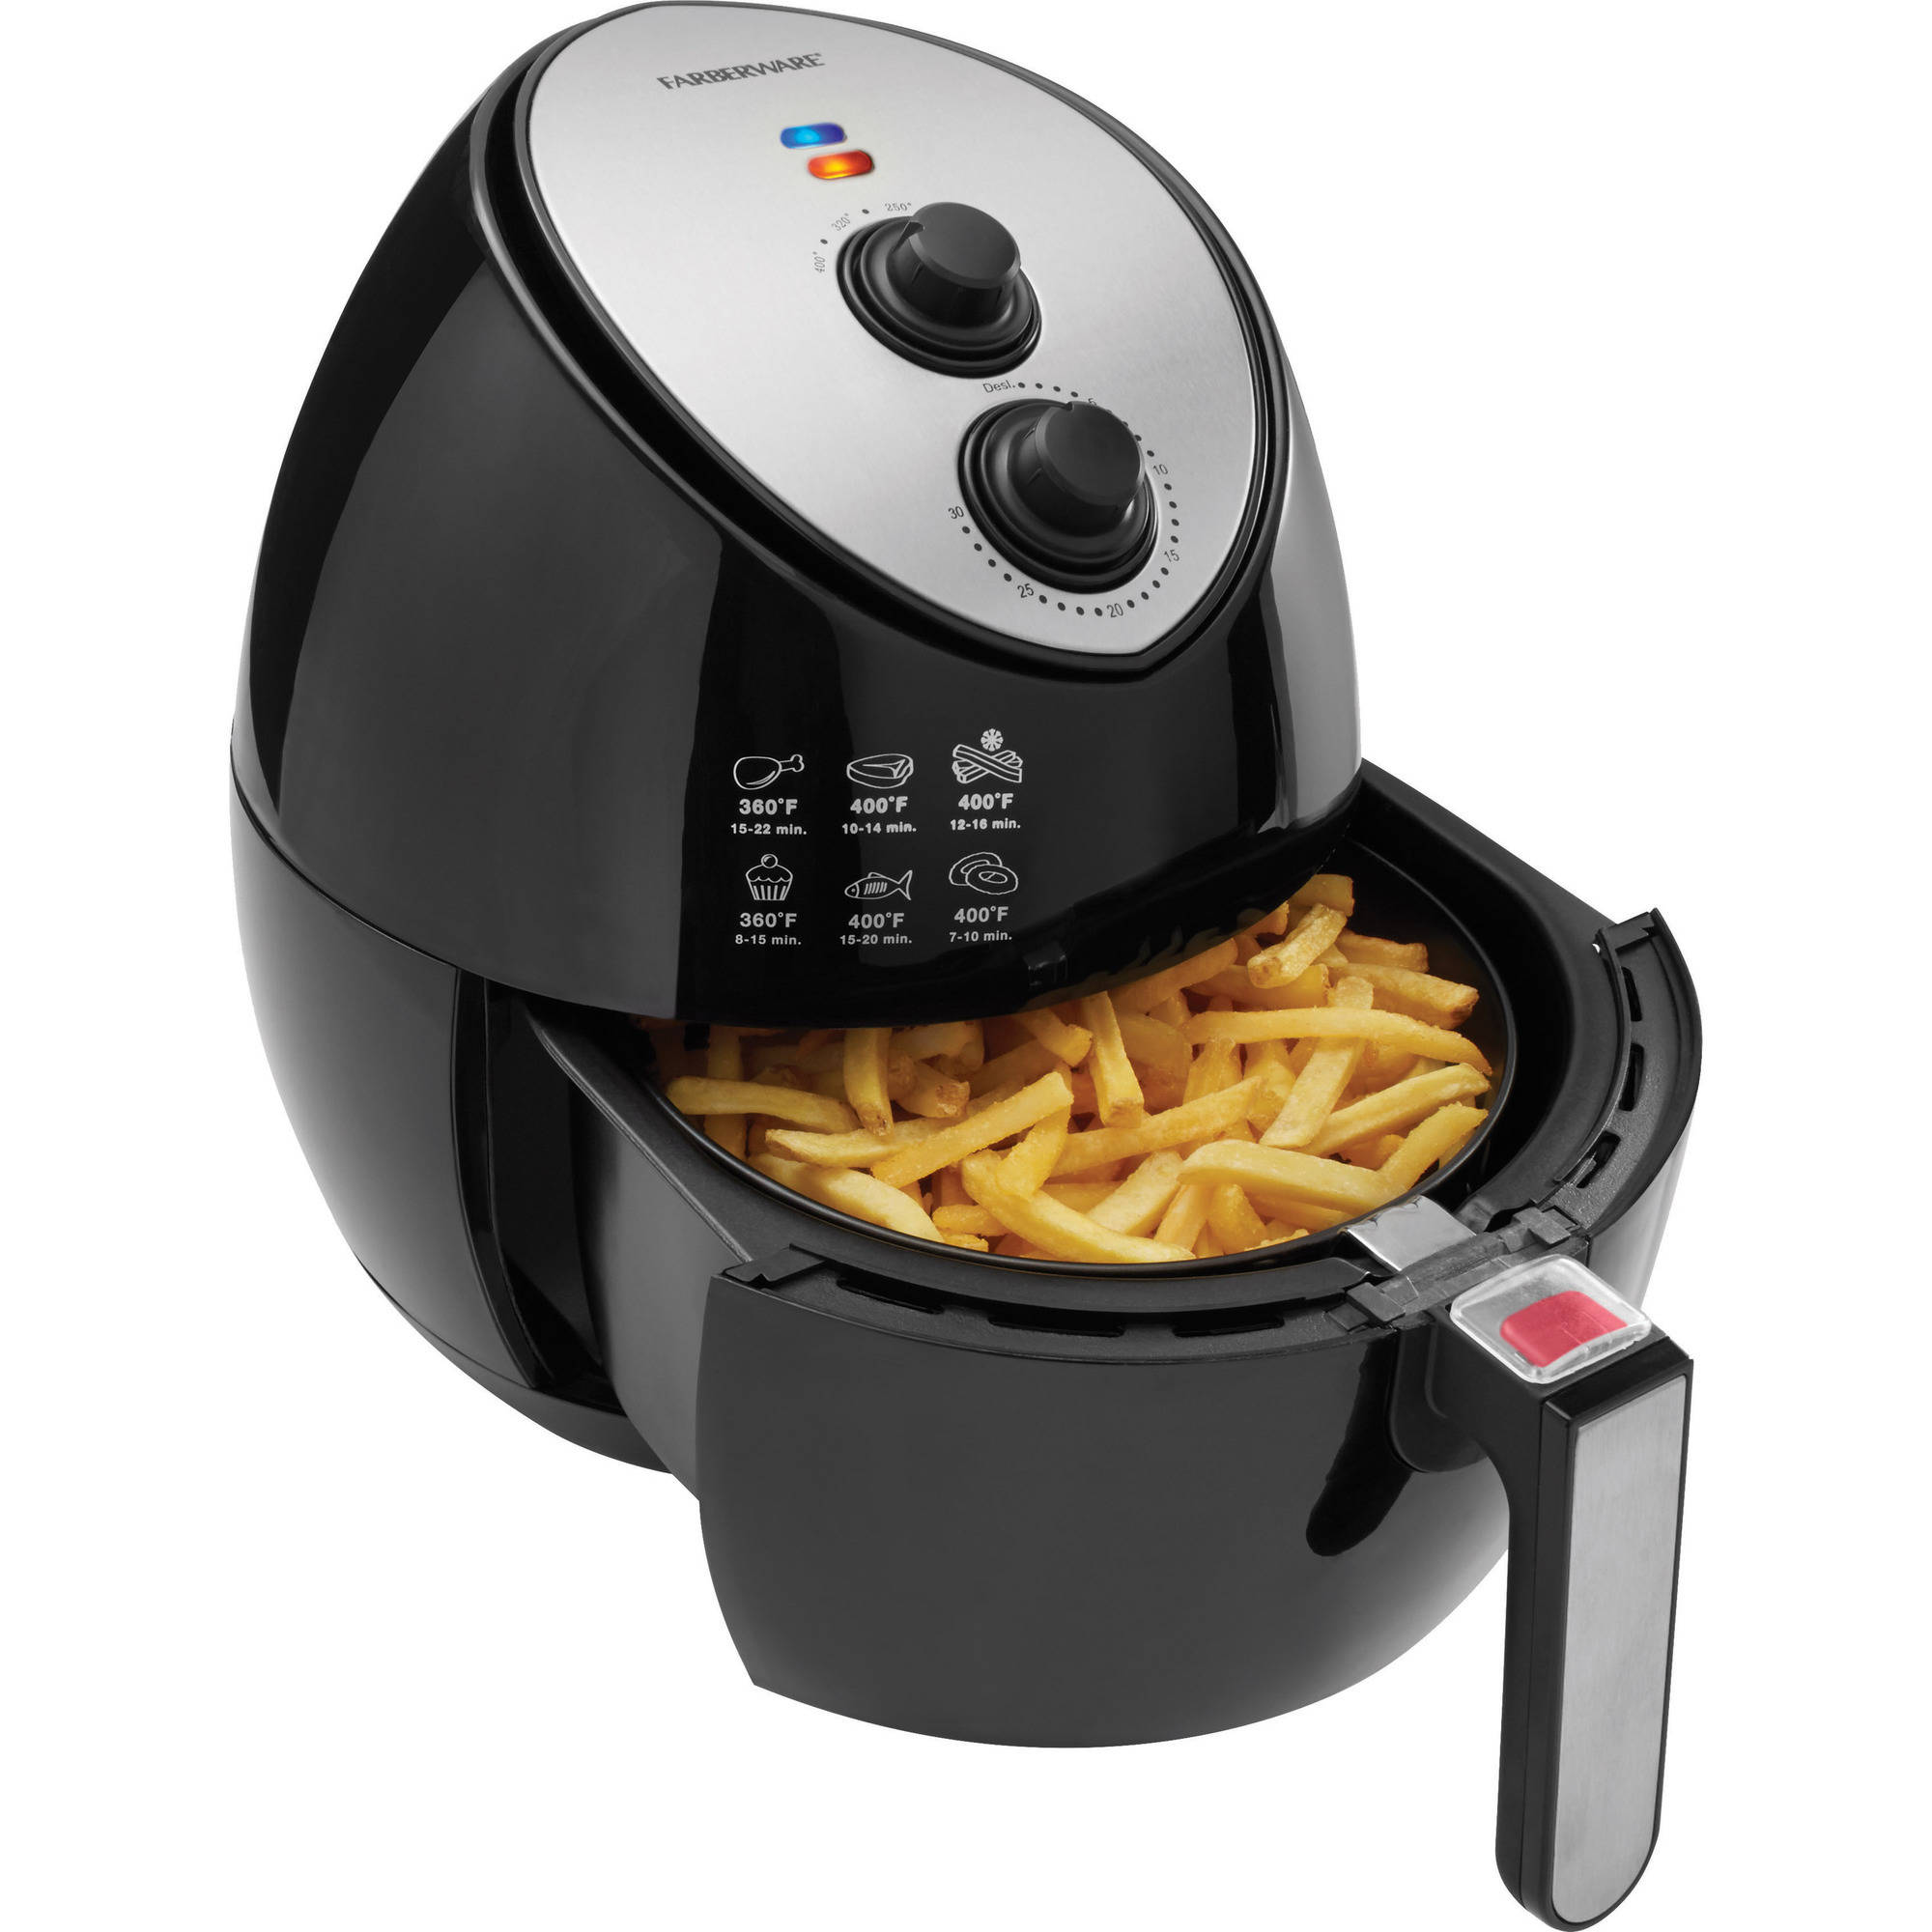 Farberware 3.2 Quart Air Fryer, Black